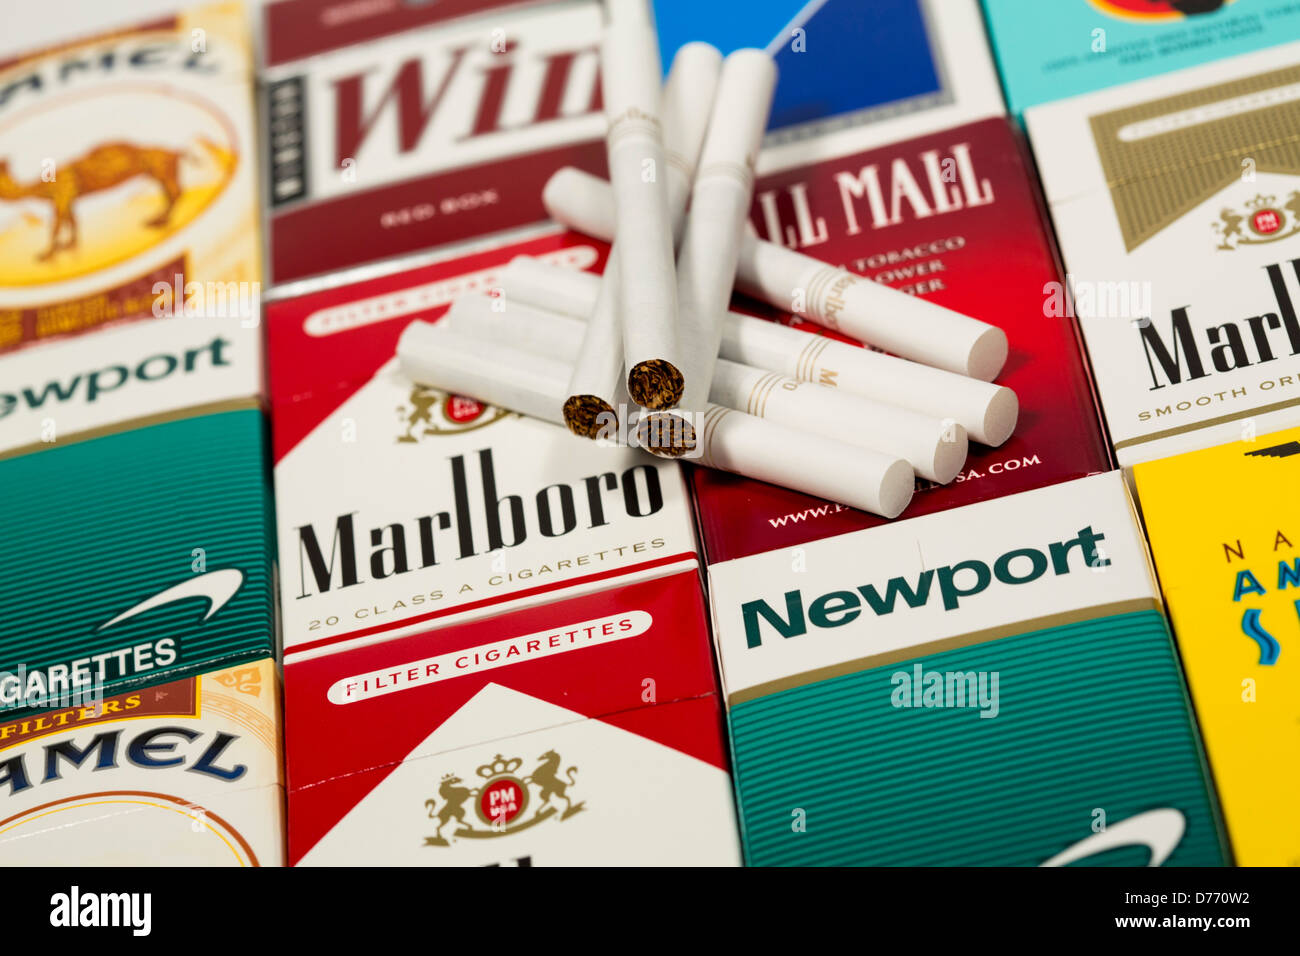 how to ask for marlboro cigarettes